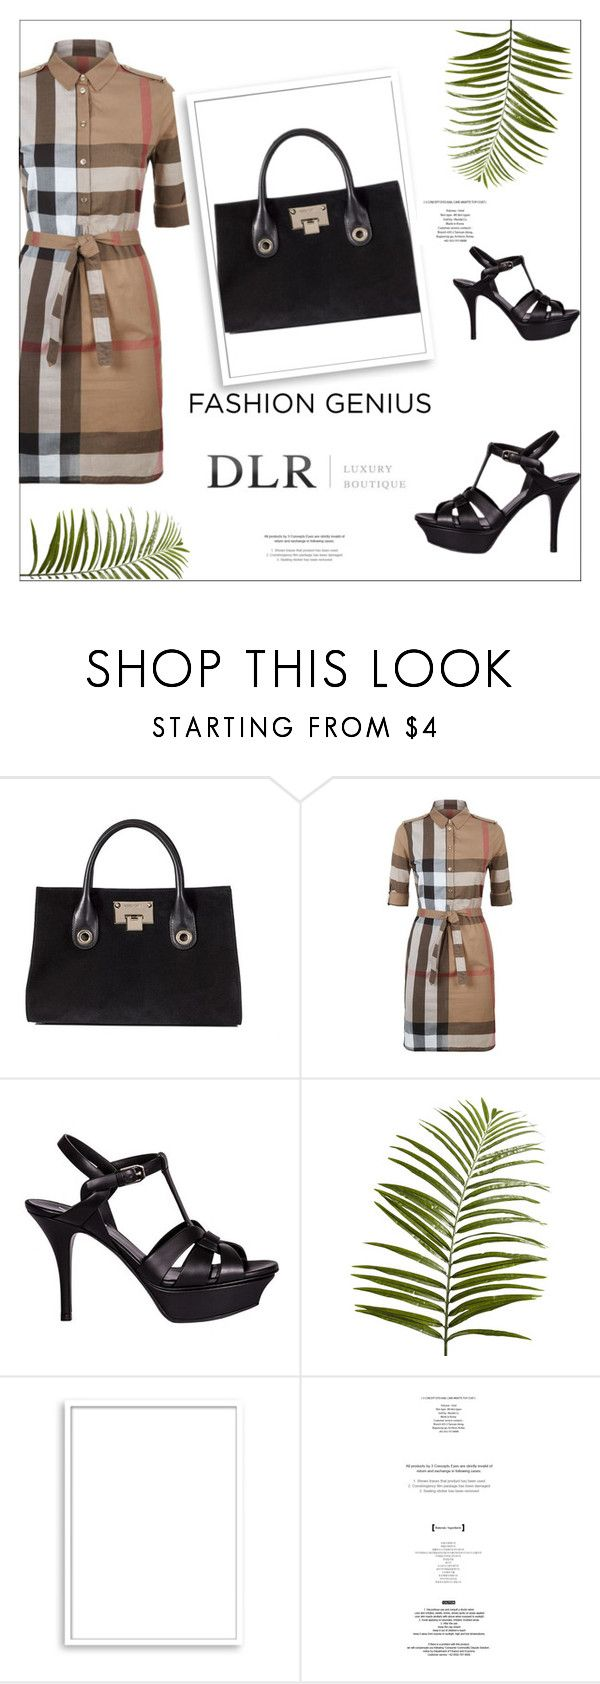 """""""Love is fun. DLR"""" by amazing-724 ❤ liked on Polyvore featuring Jimmy Choo, Burberry, Yves Saint Laurent, Pier 1 Imports and Bomedo"""